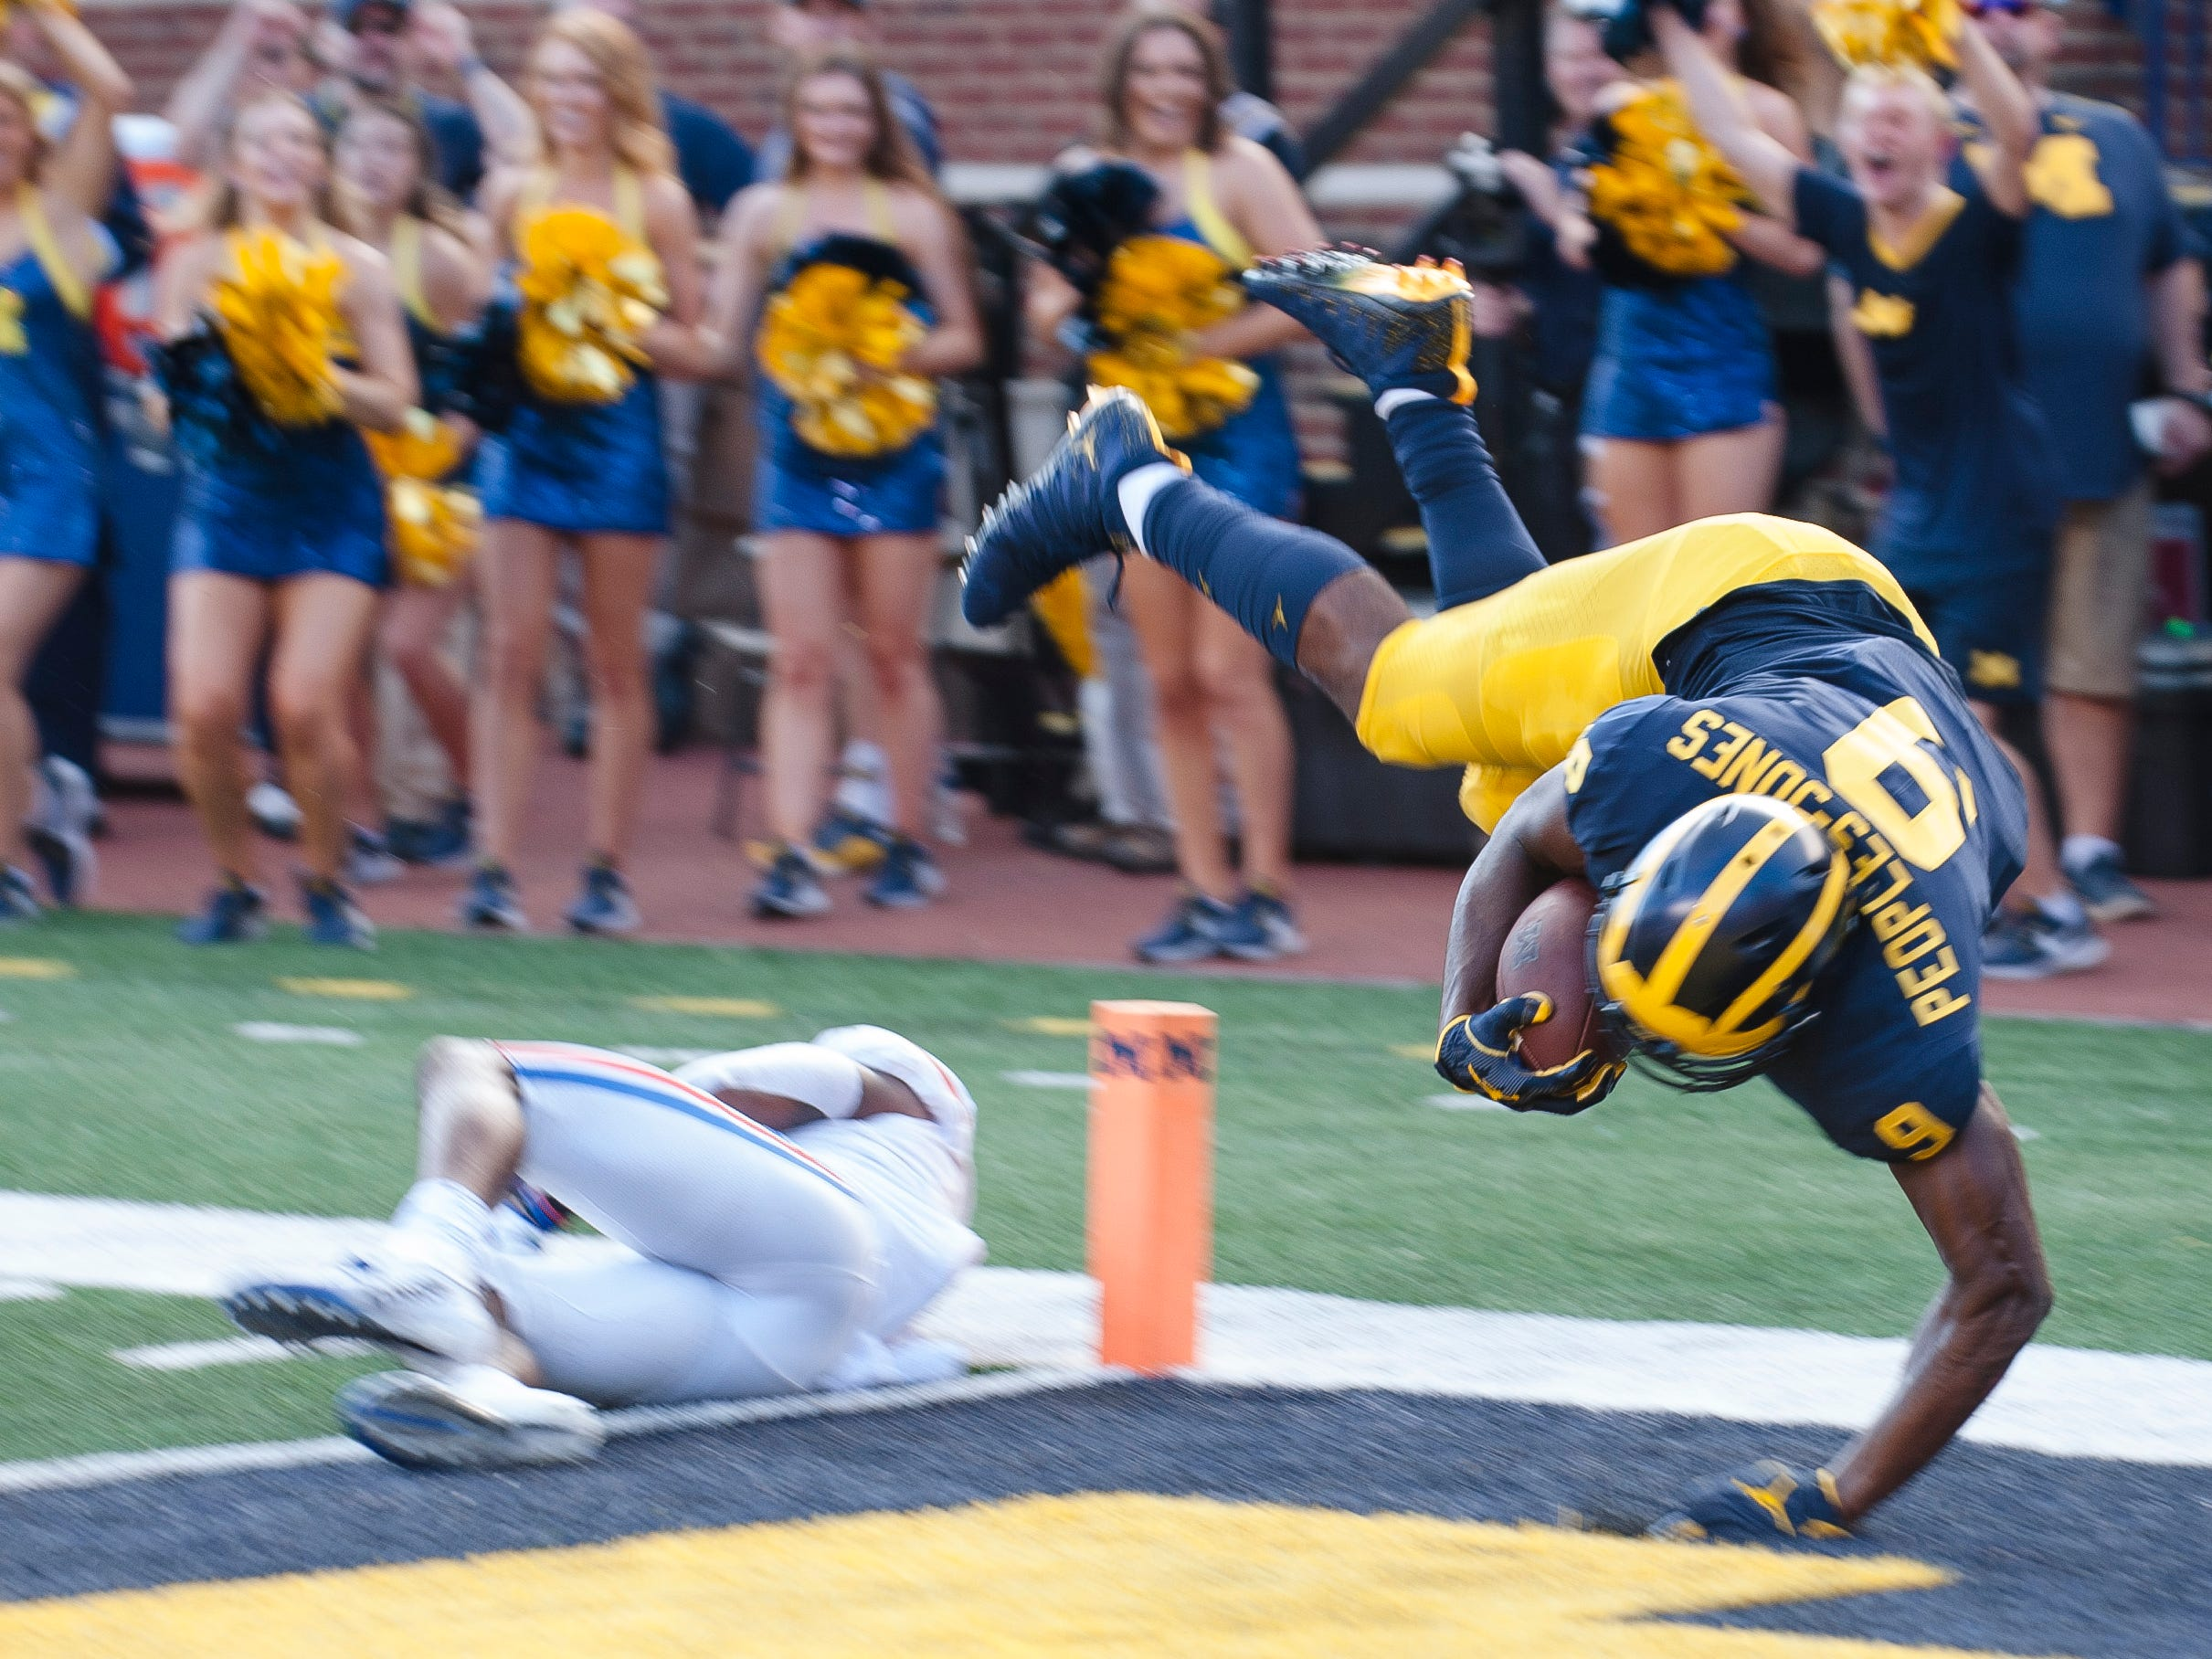 Michigan wide receiver Donovan Peoples-Jones dives over Southern Methodist cornerback Robert Hayes Jr. to score on a 35-yard touchdown pass from quarterback Shea Patterson in the second quarter.